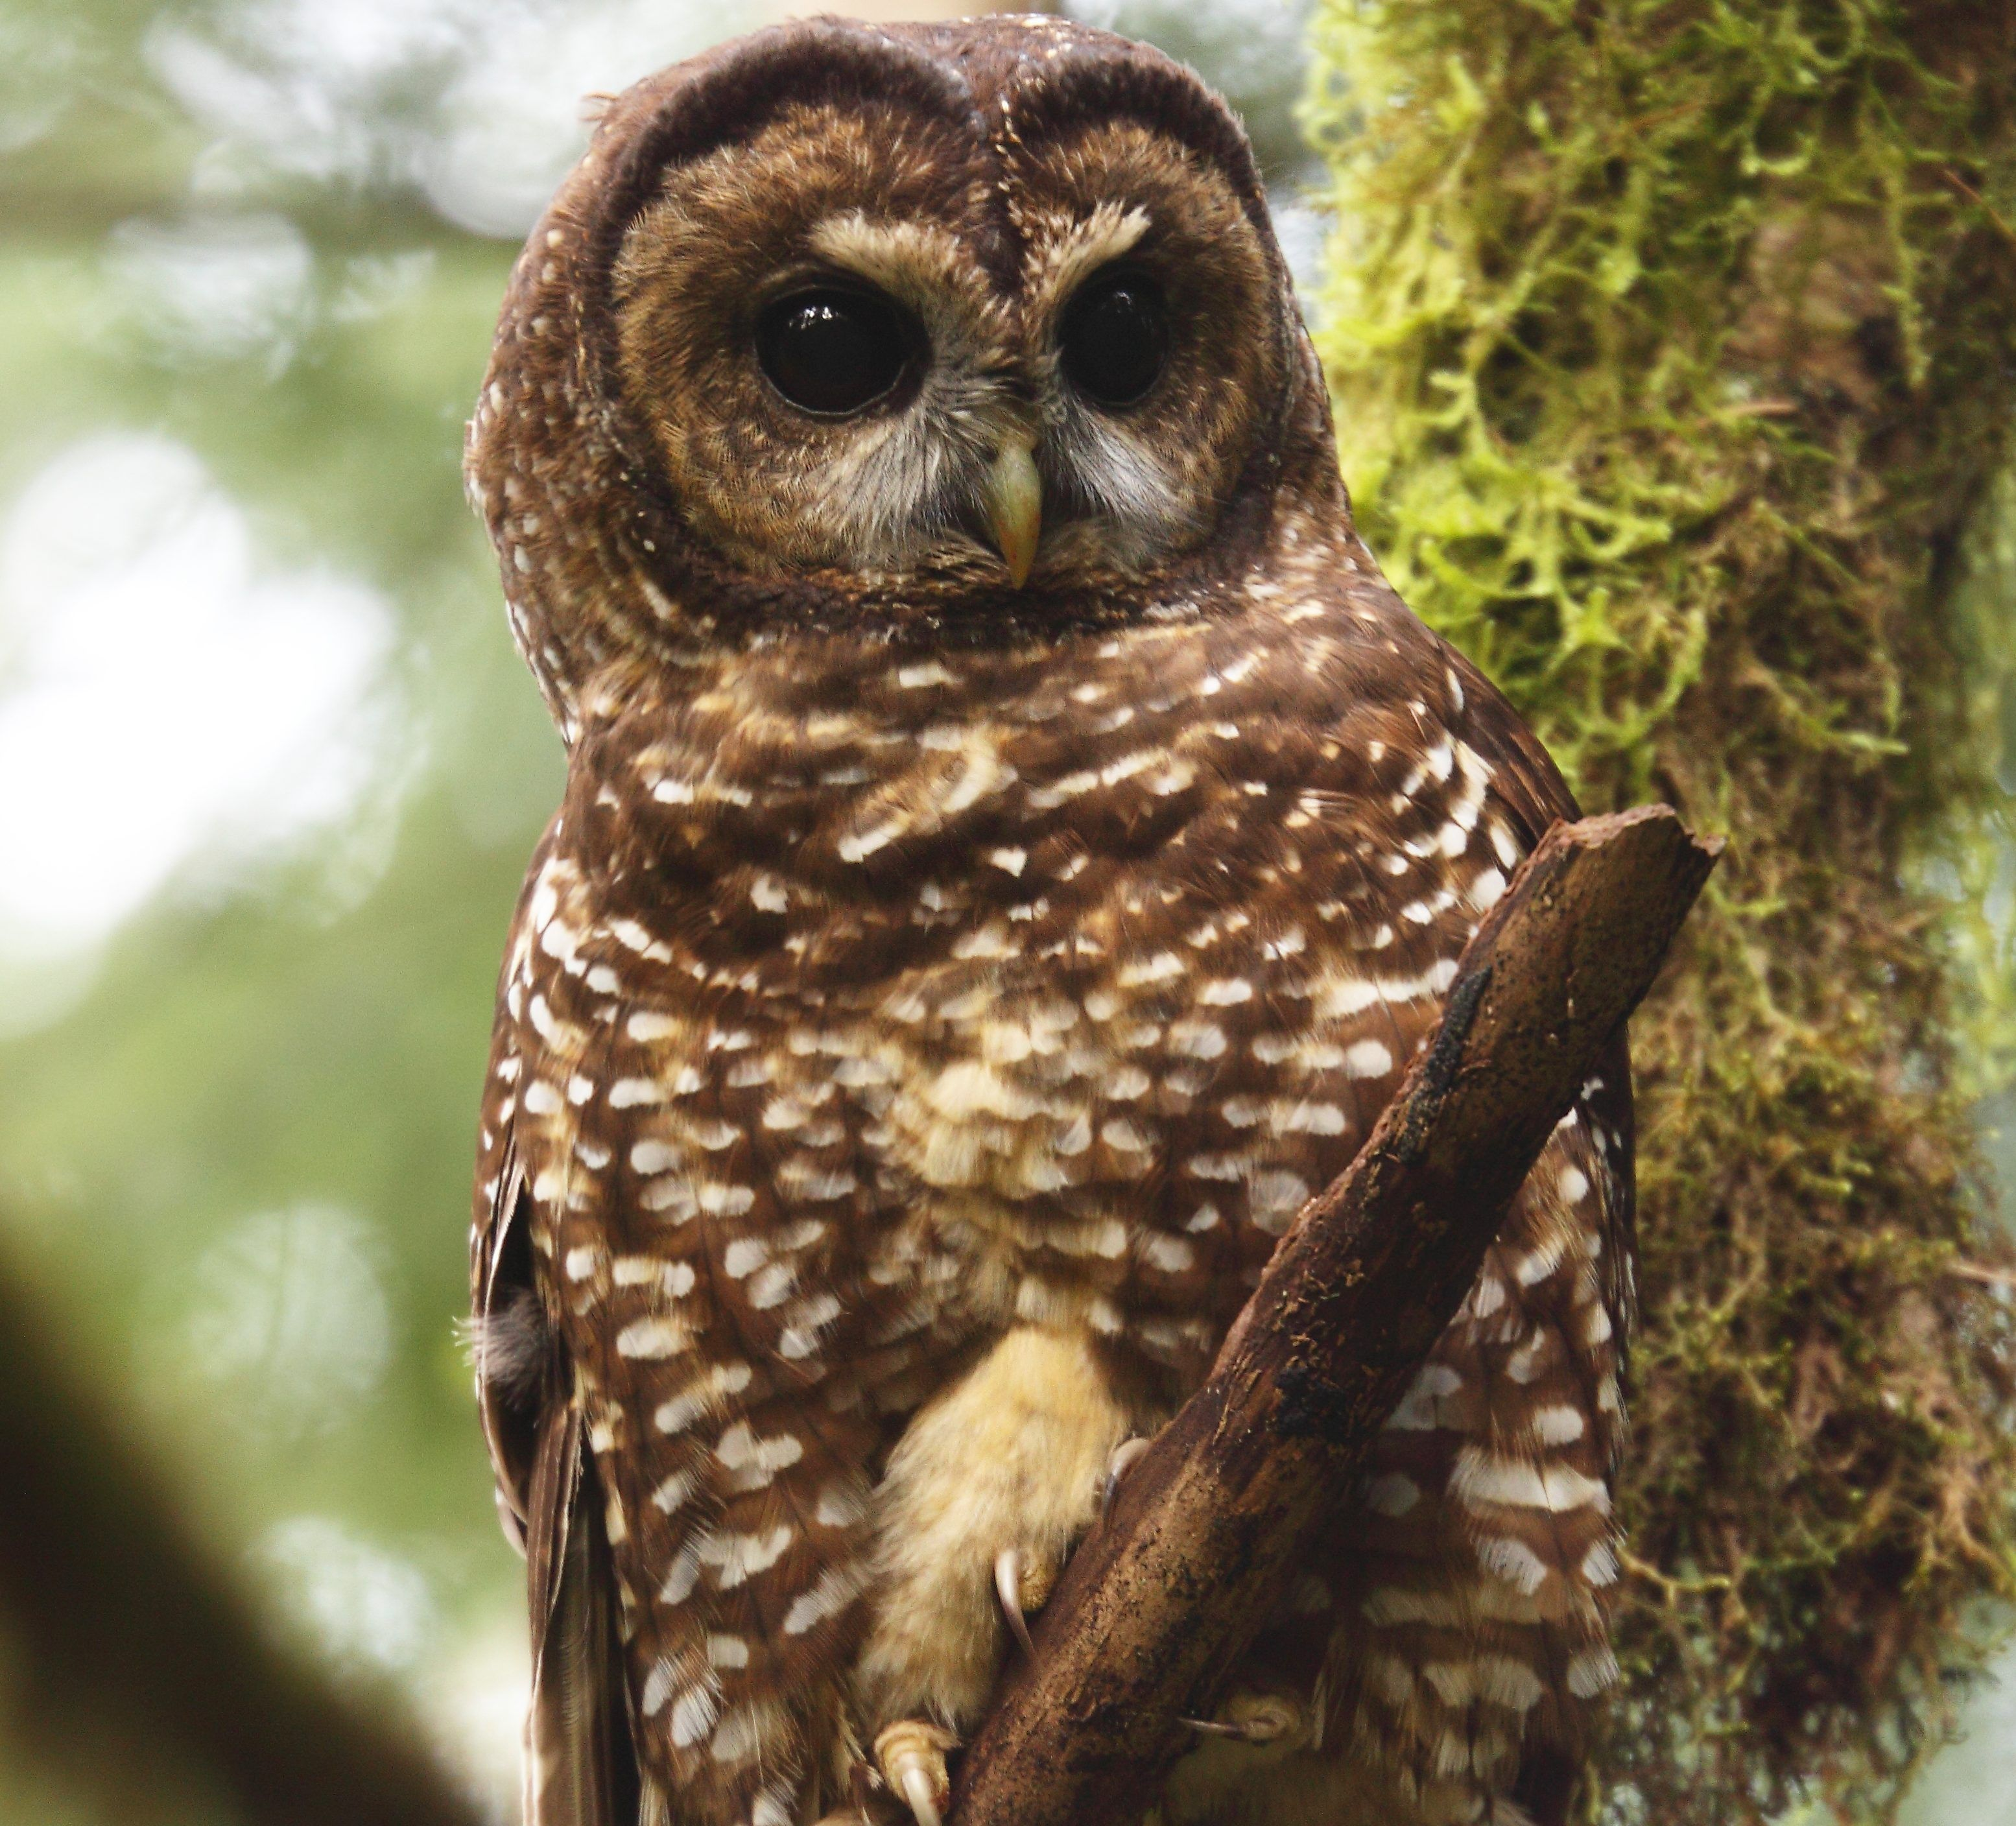 U.S. Fish and Wildlife Service Says Oregon's Spotted Owl Should Be Reclassified as an Endangered Species